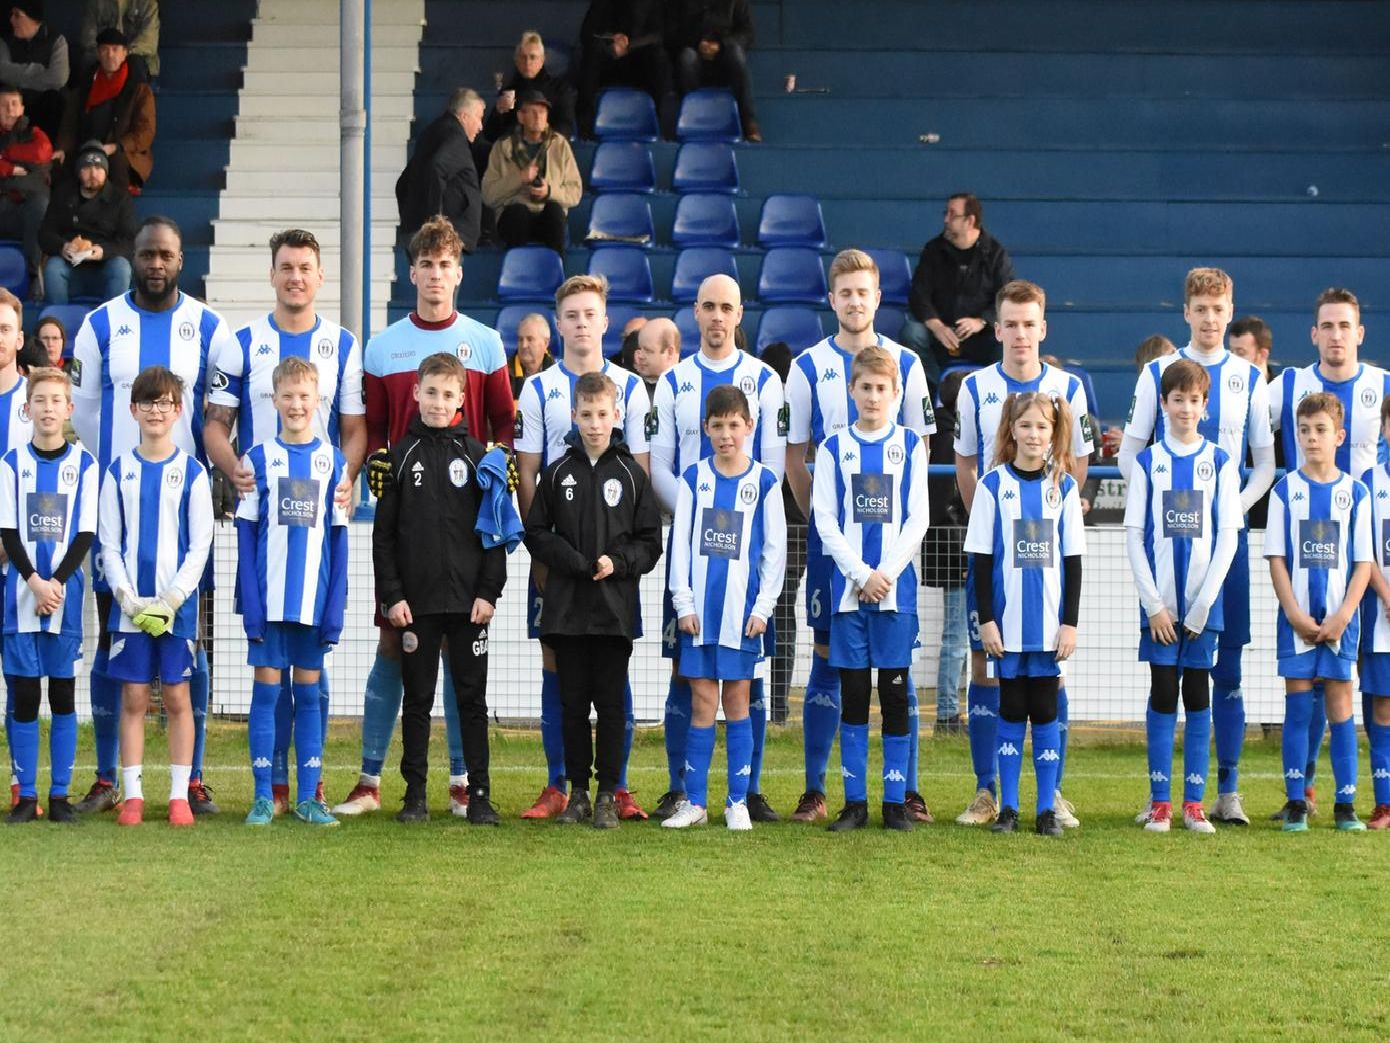 The team and today's mascots. Picture by Grahame Lehkyj